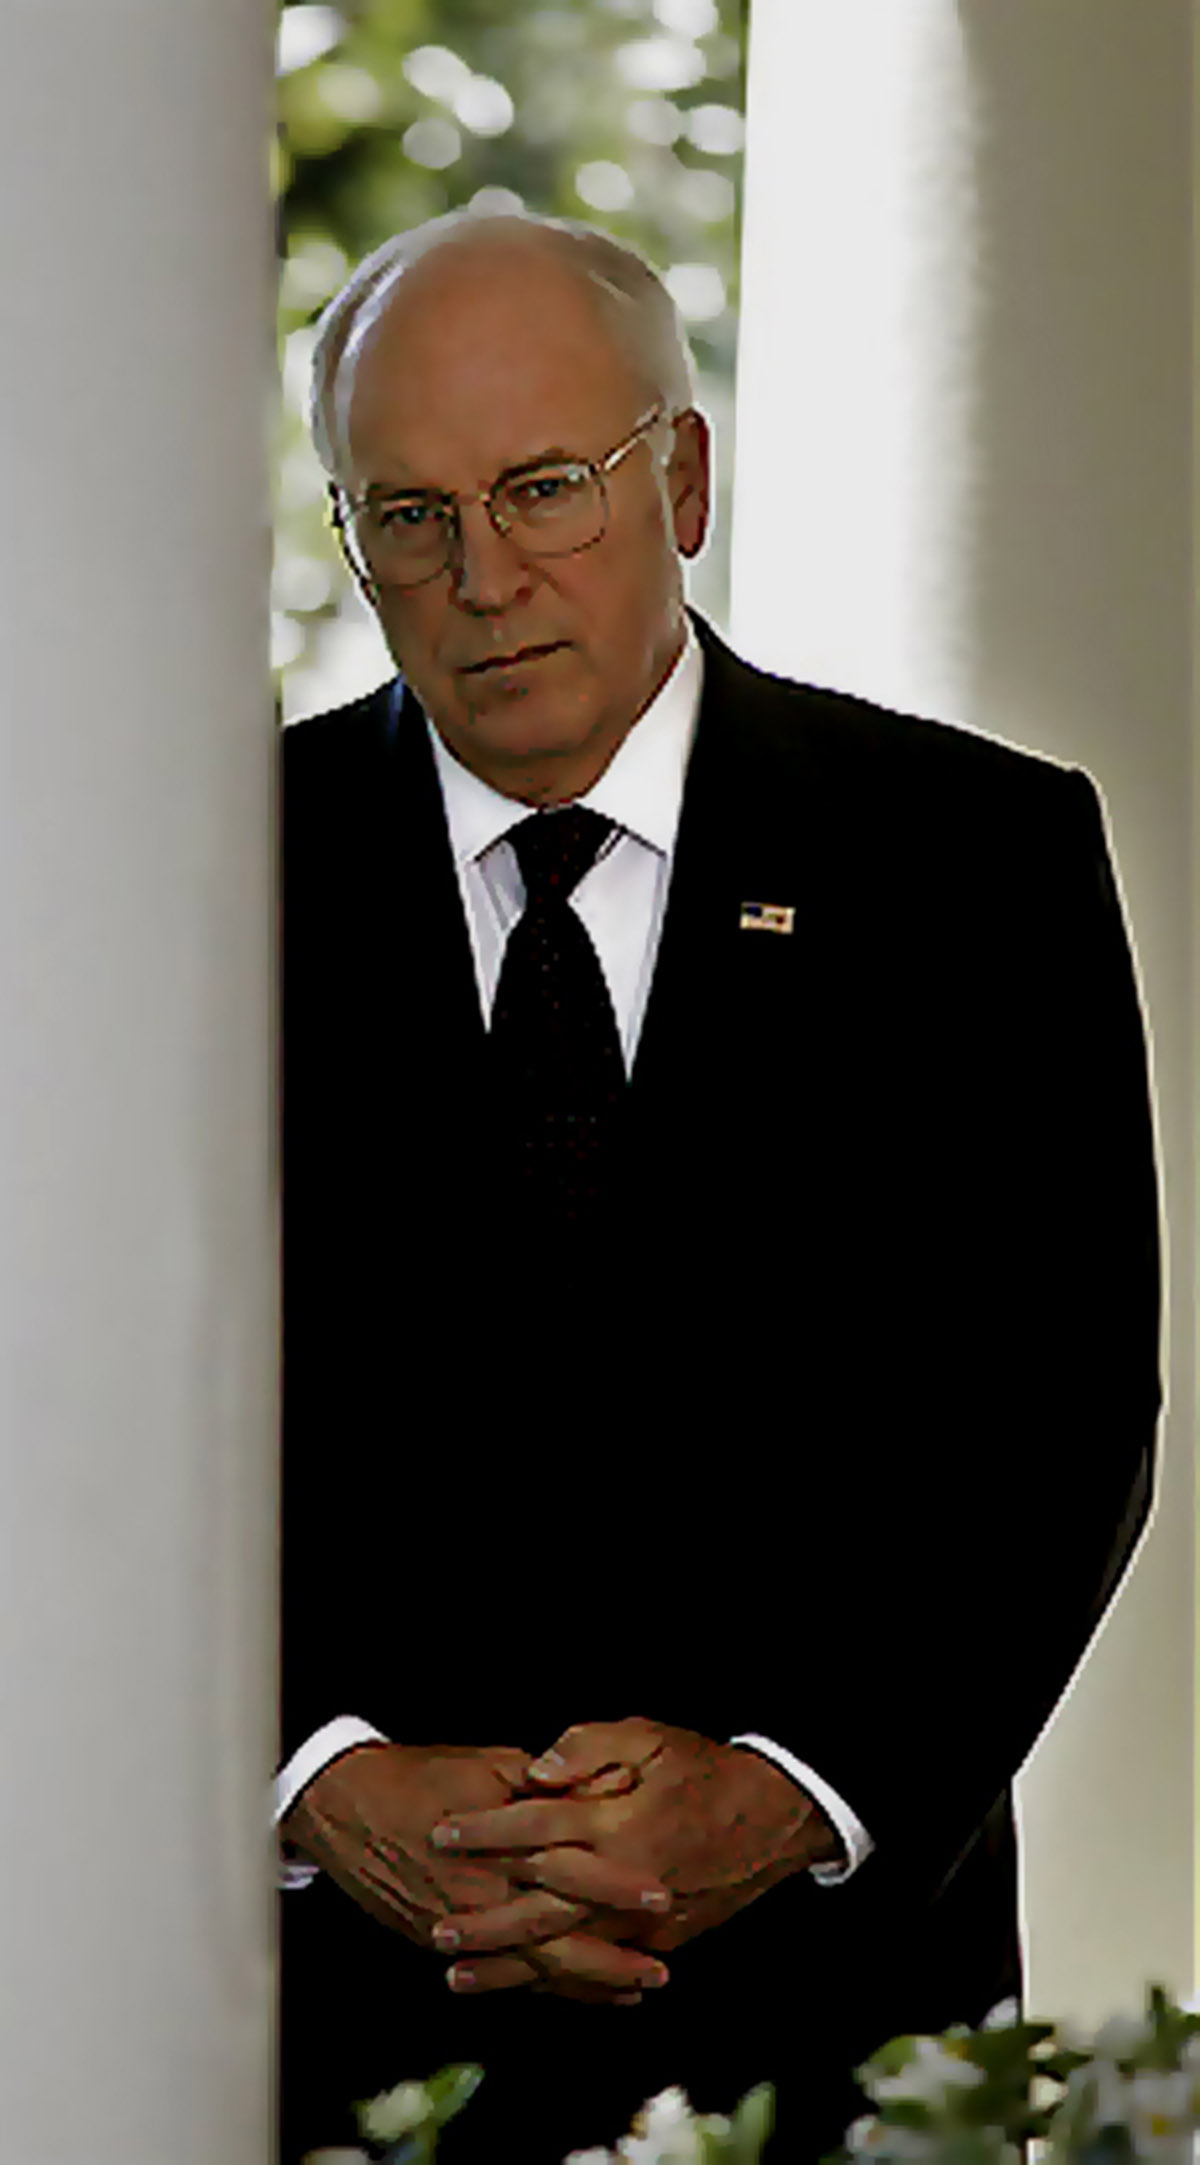 "SLUG: st/preview20   INPUTDATE: 2006-06-19 11:31:30.437   CREDIT: PBS/FROM_PHOTOPOST/PBS  LOCATION: x, , x  CAPTION: FRONTLINE ""The Dark Side"" Vice President Dick Cheney  Sent by: John Maynard   Photo Editor:"